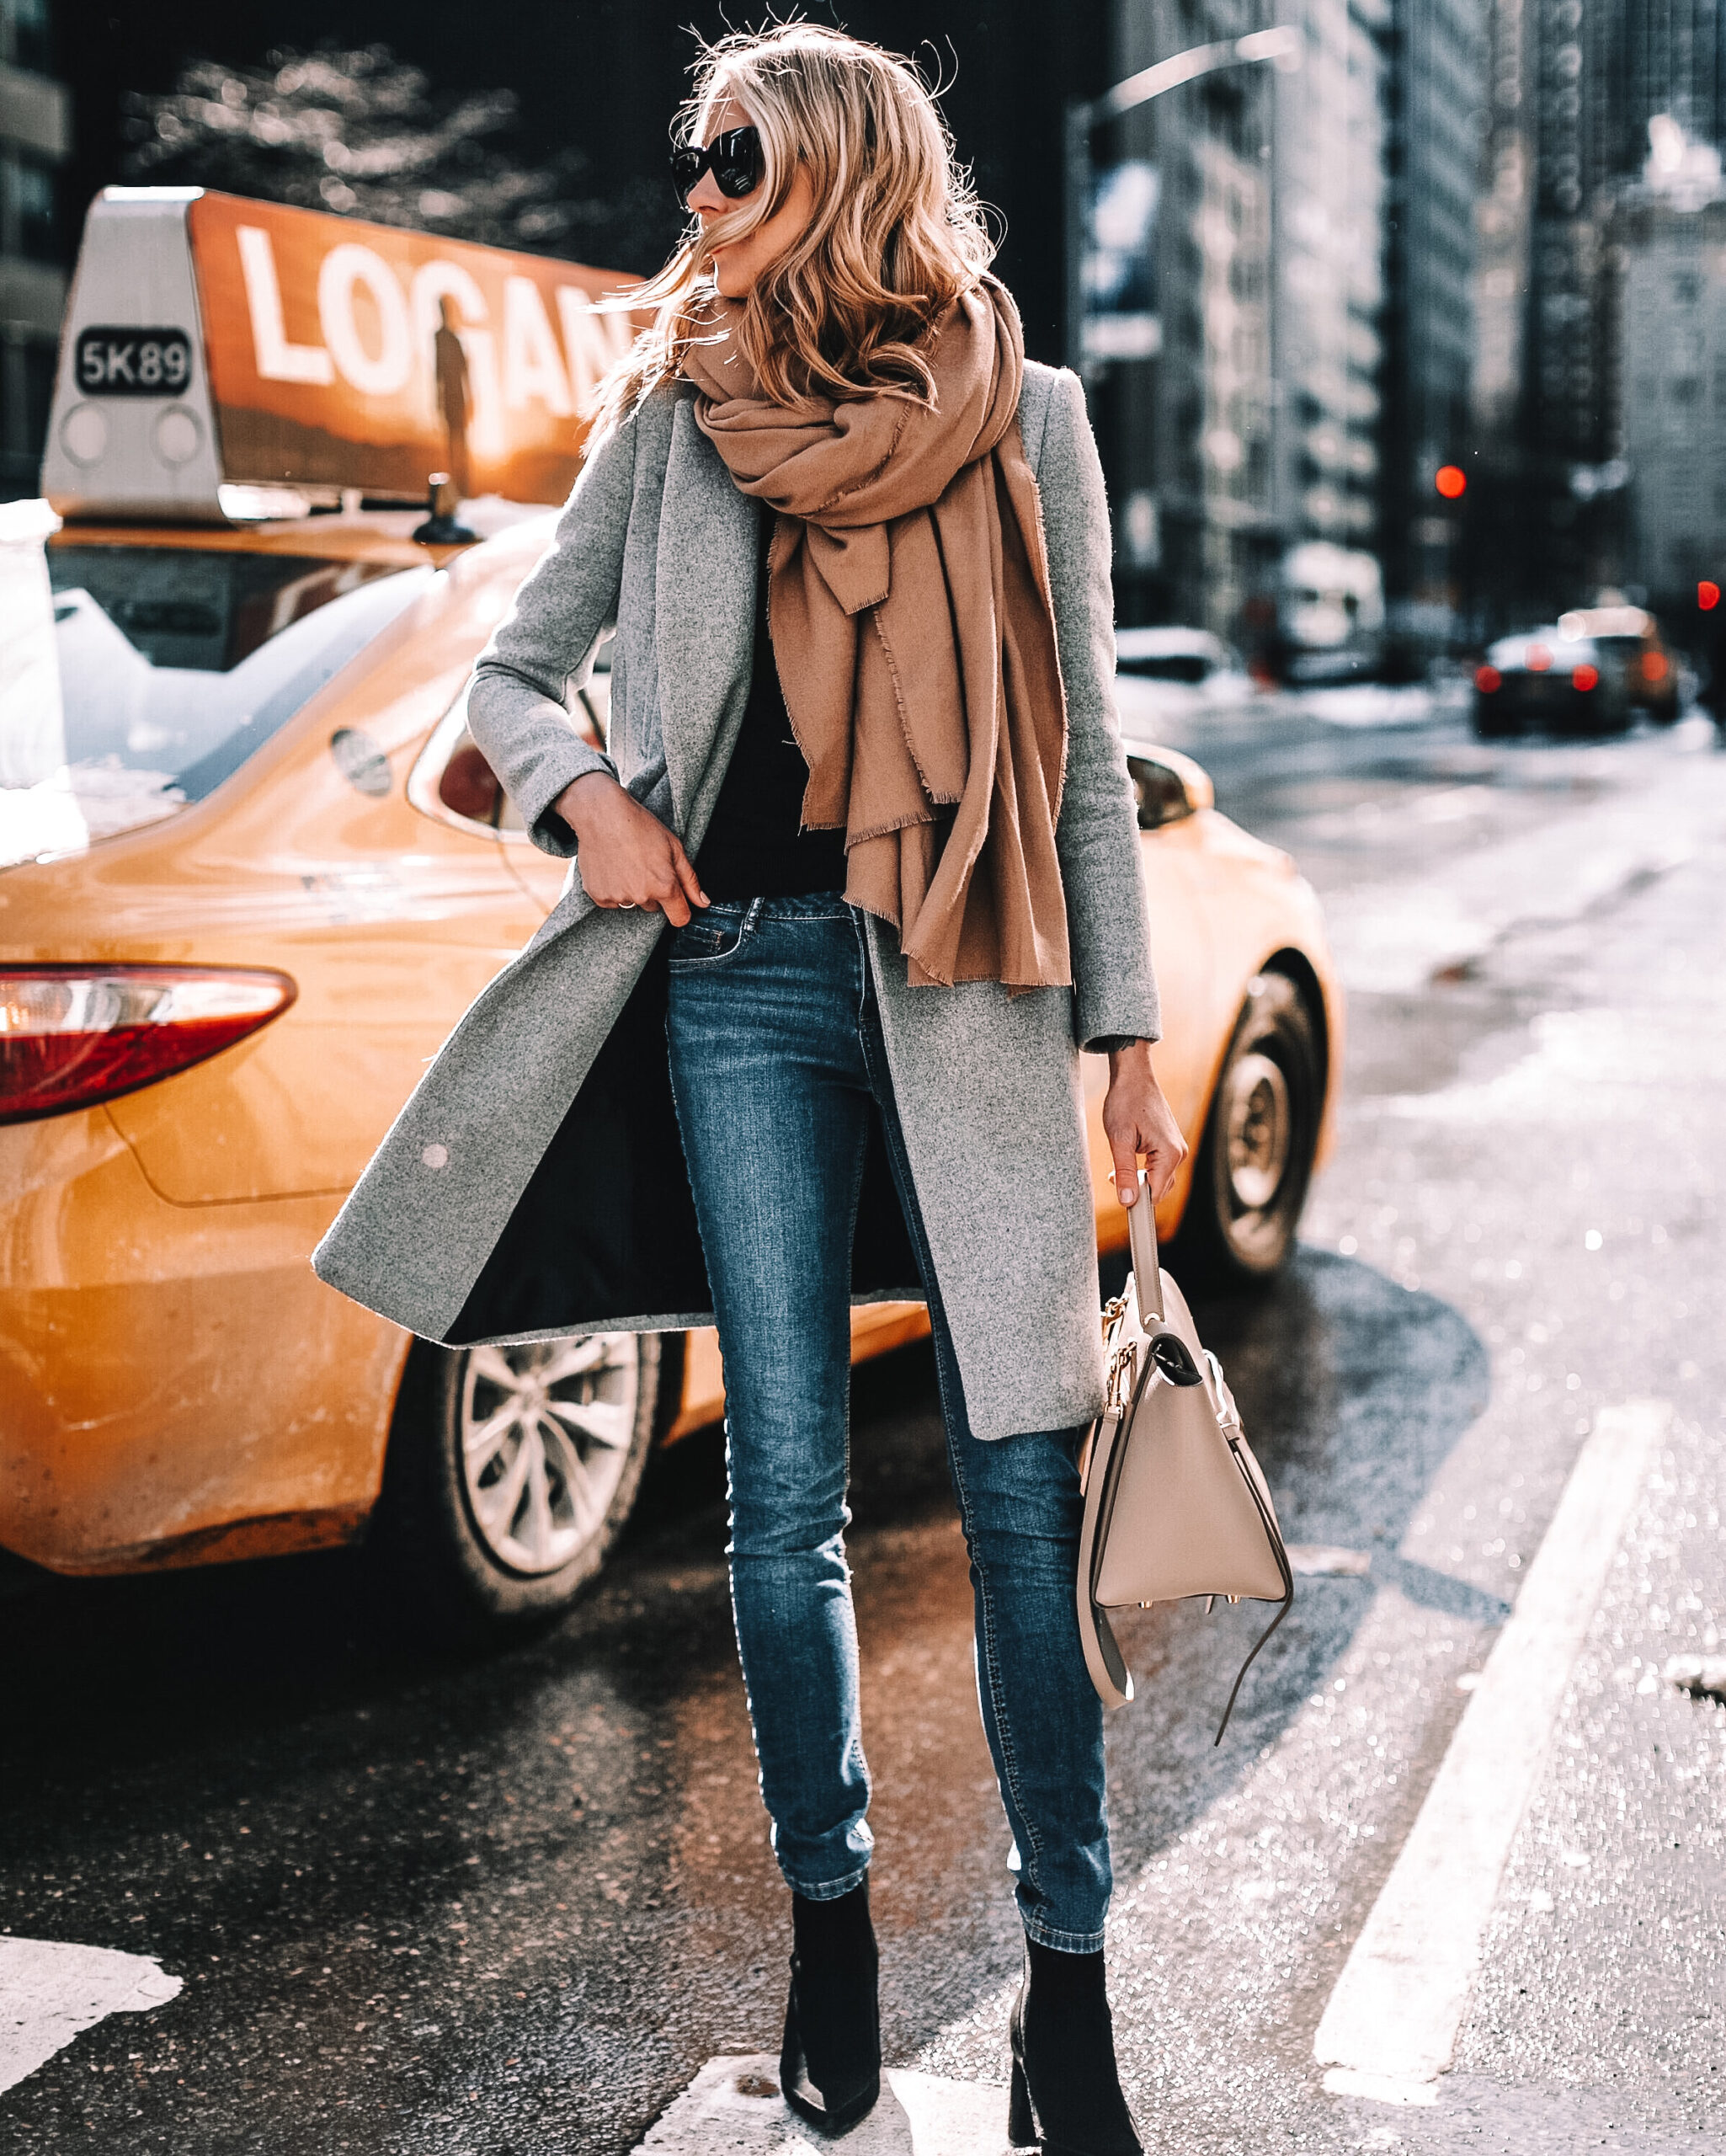 Fashion Jackson Wearing Grey Coat Camel Scarf Black Booties Winter Outfit